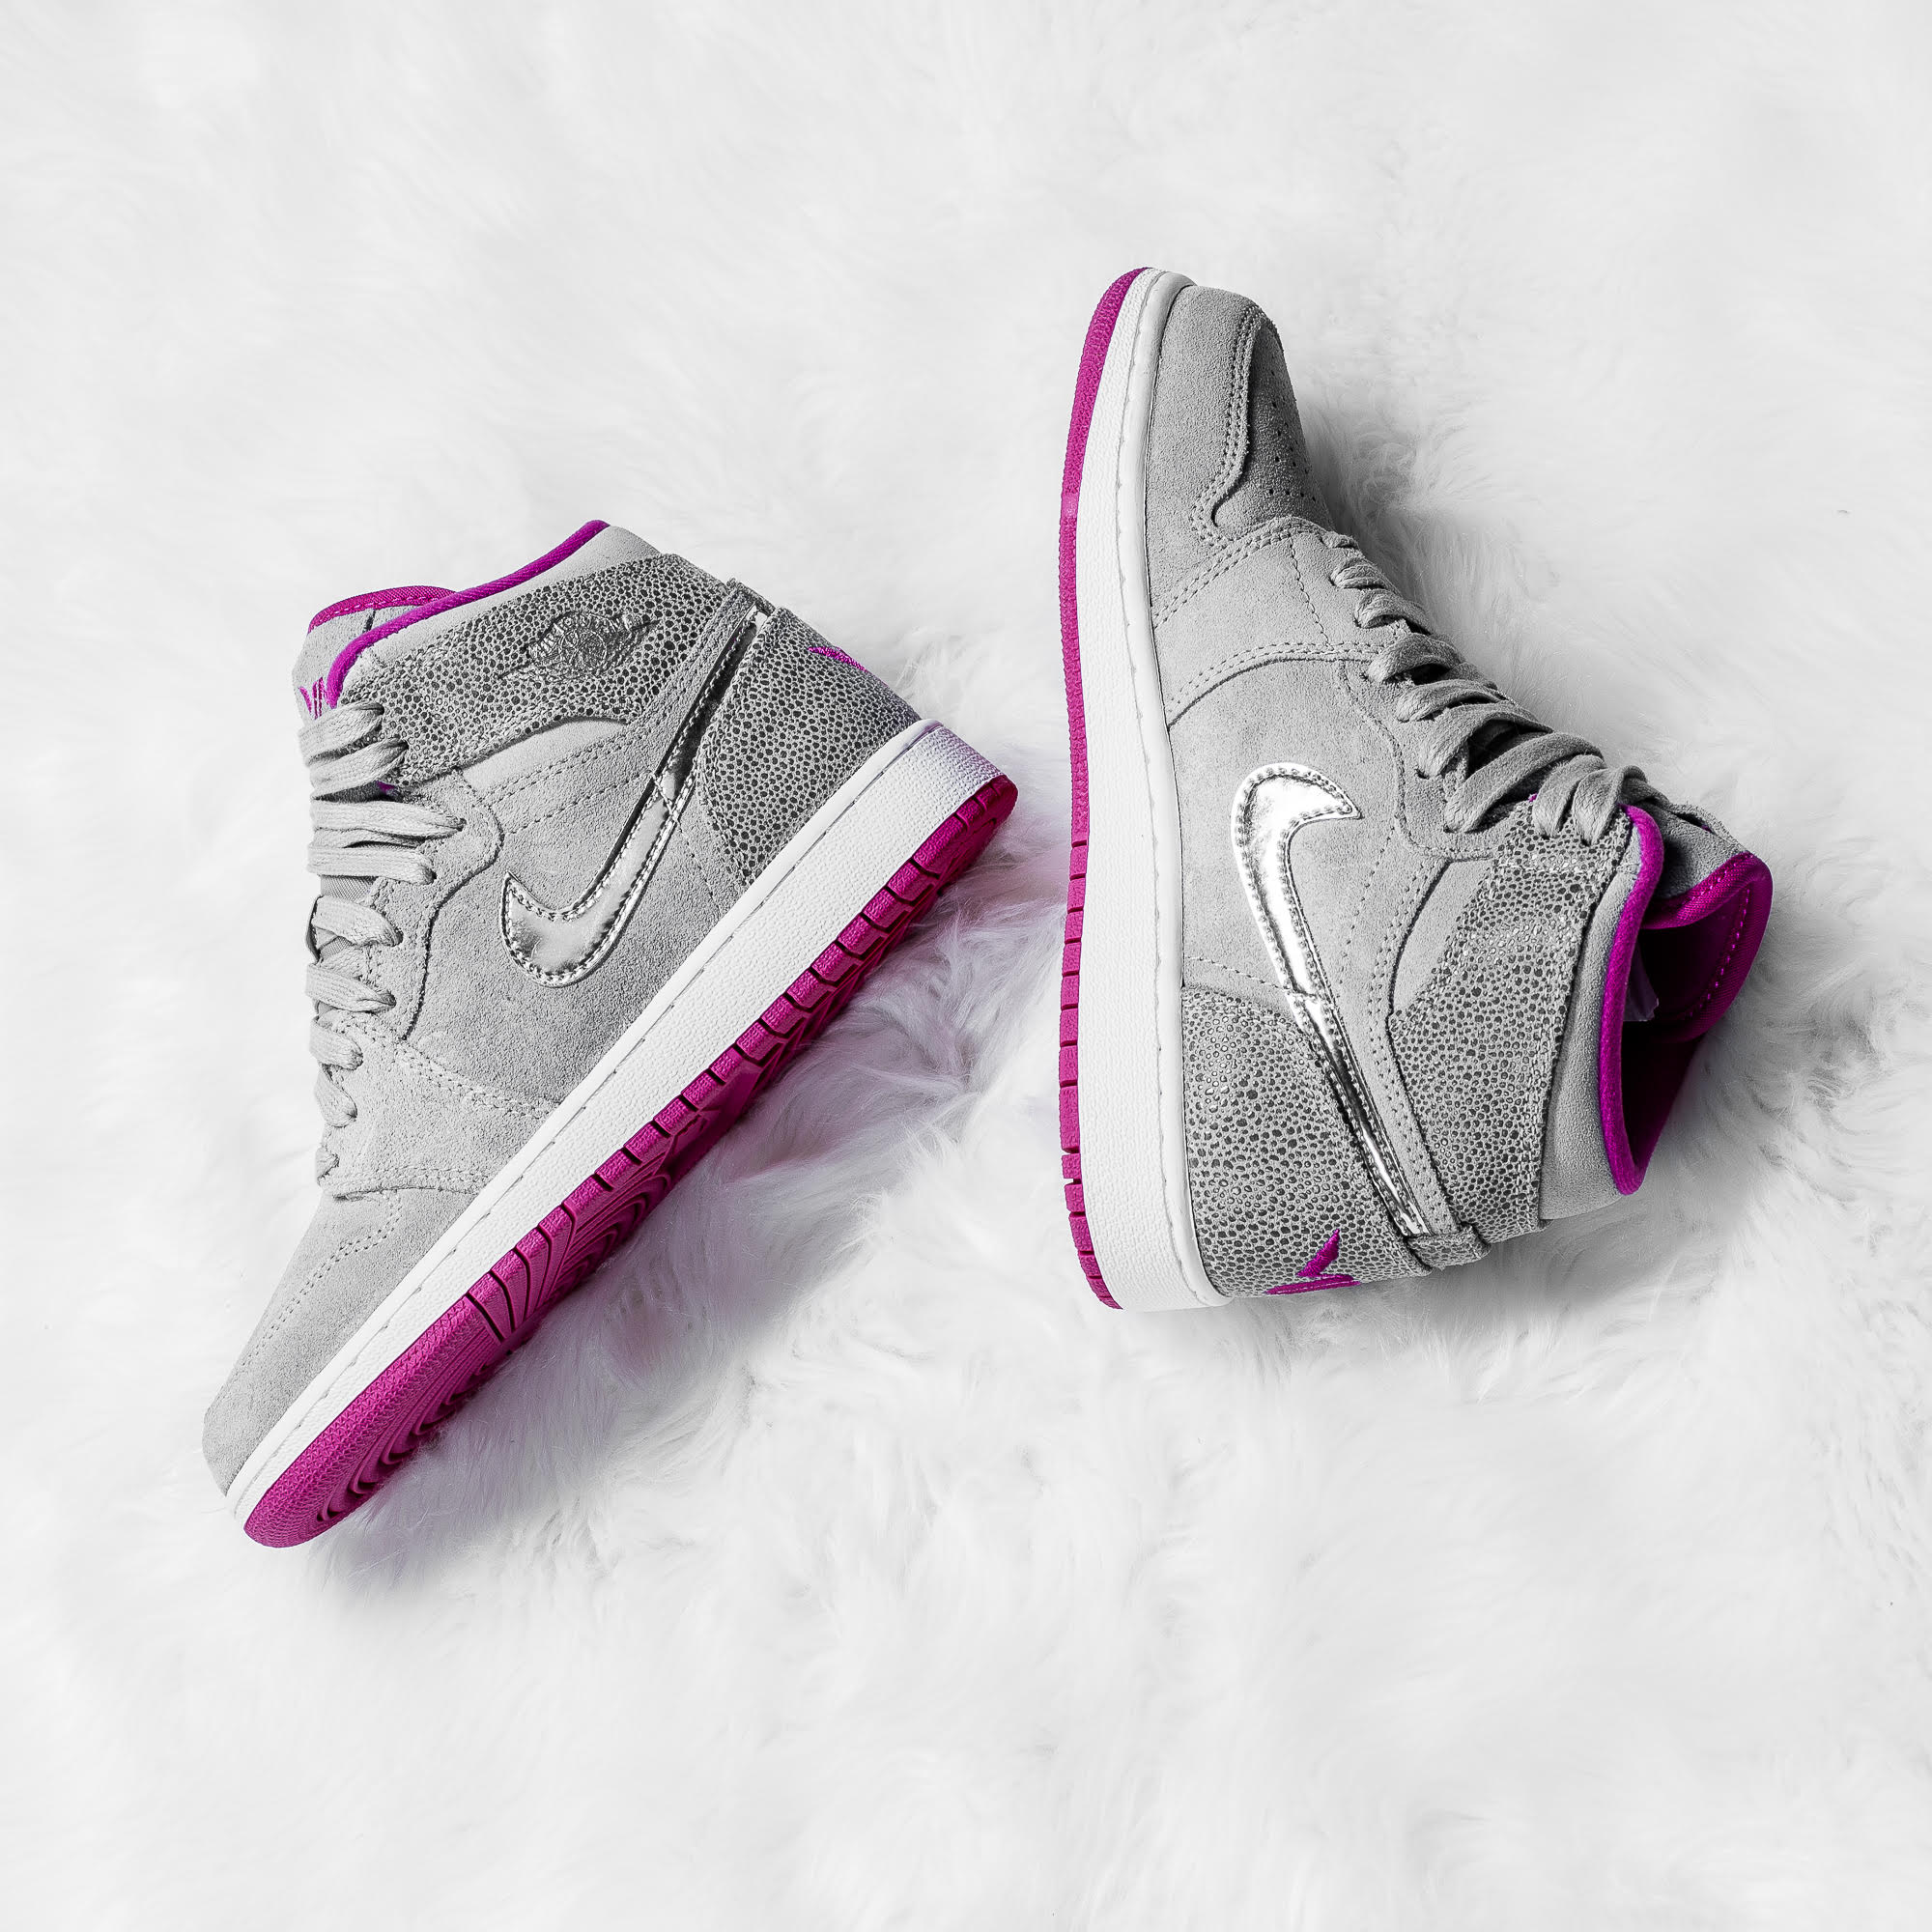 61ad40c3abf8c1 new style womens air jordan 4 retro white blue pink shoes authenticno sale  tax 0930b 1eb69  best price air jordan 1 maya moore 88bb2 40c1c